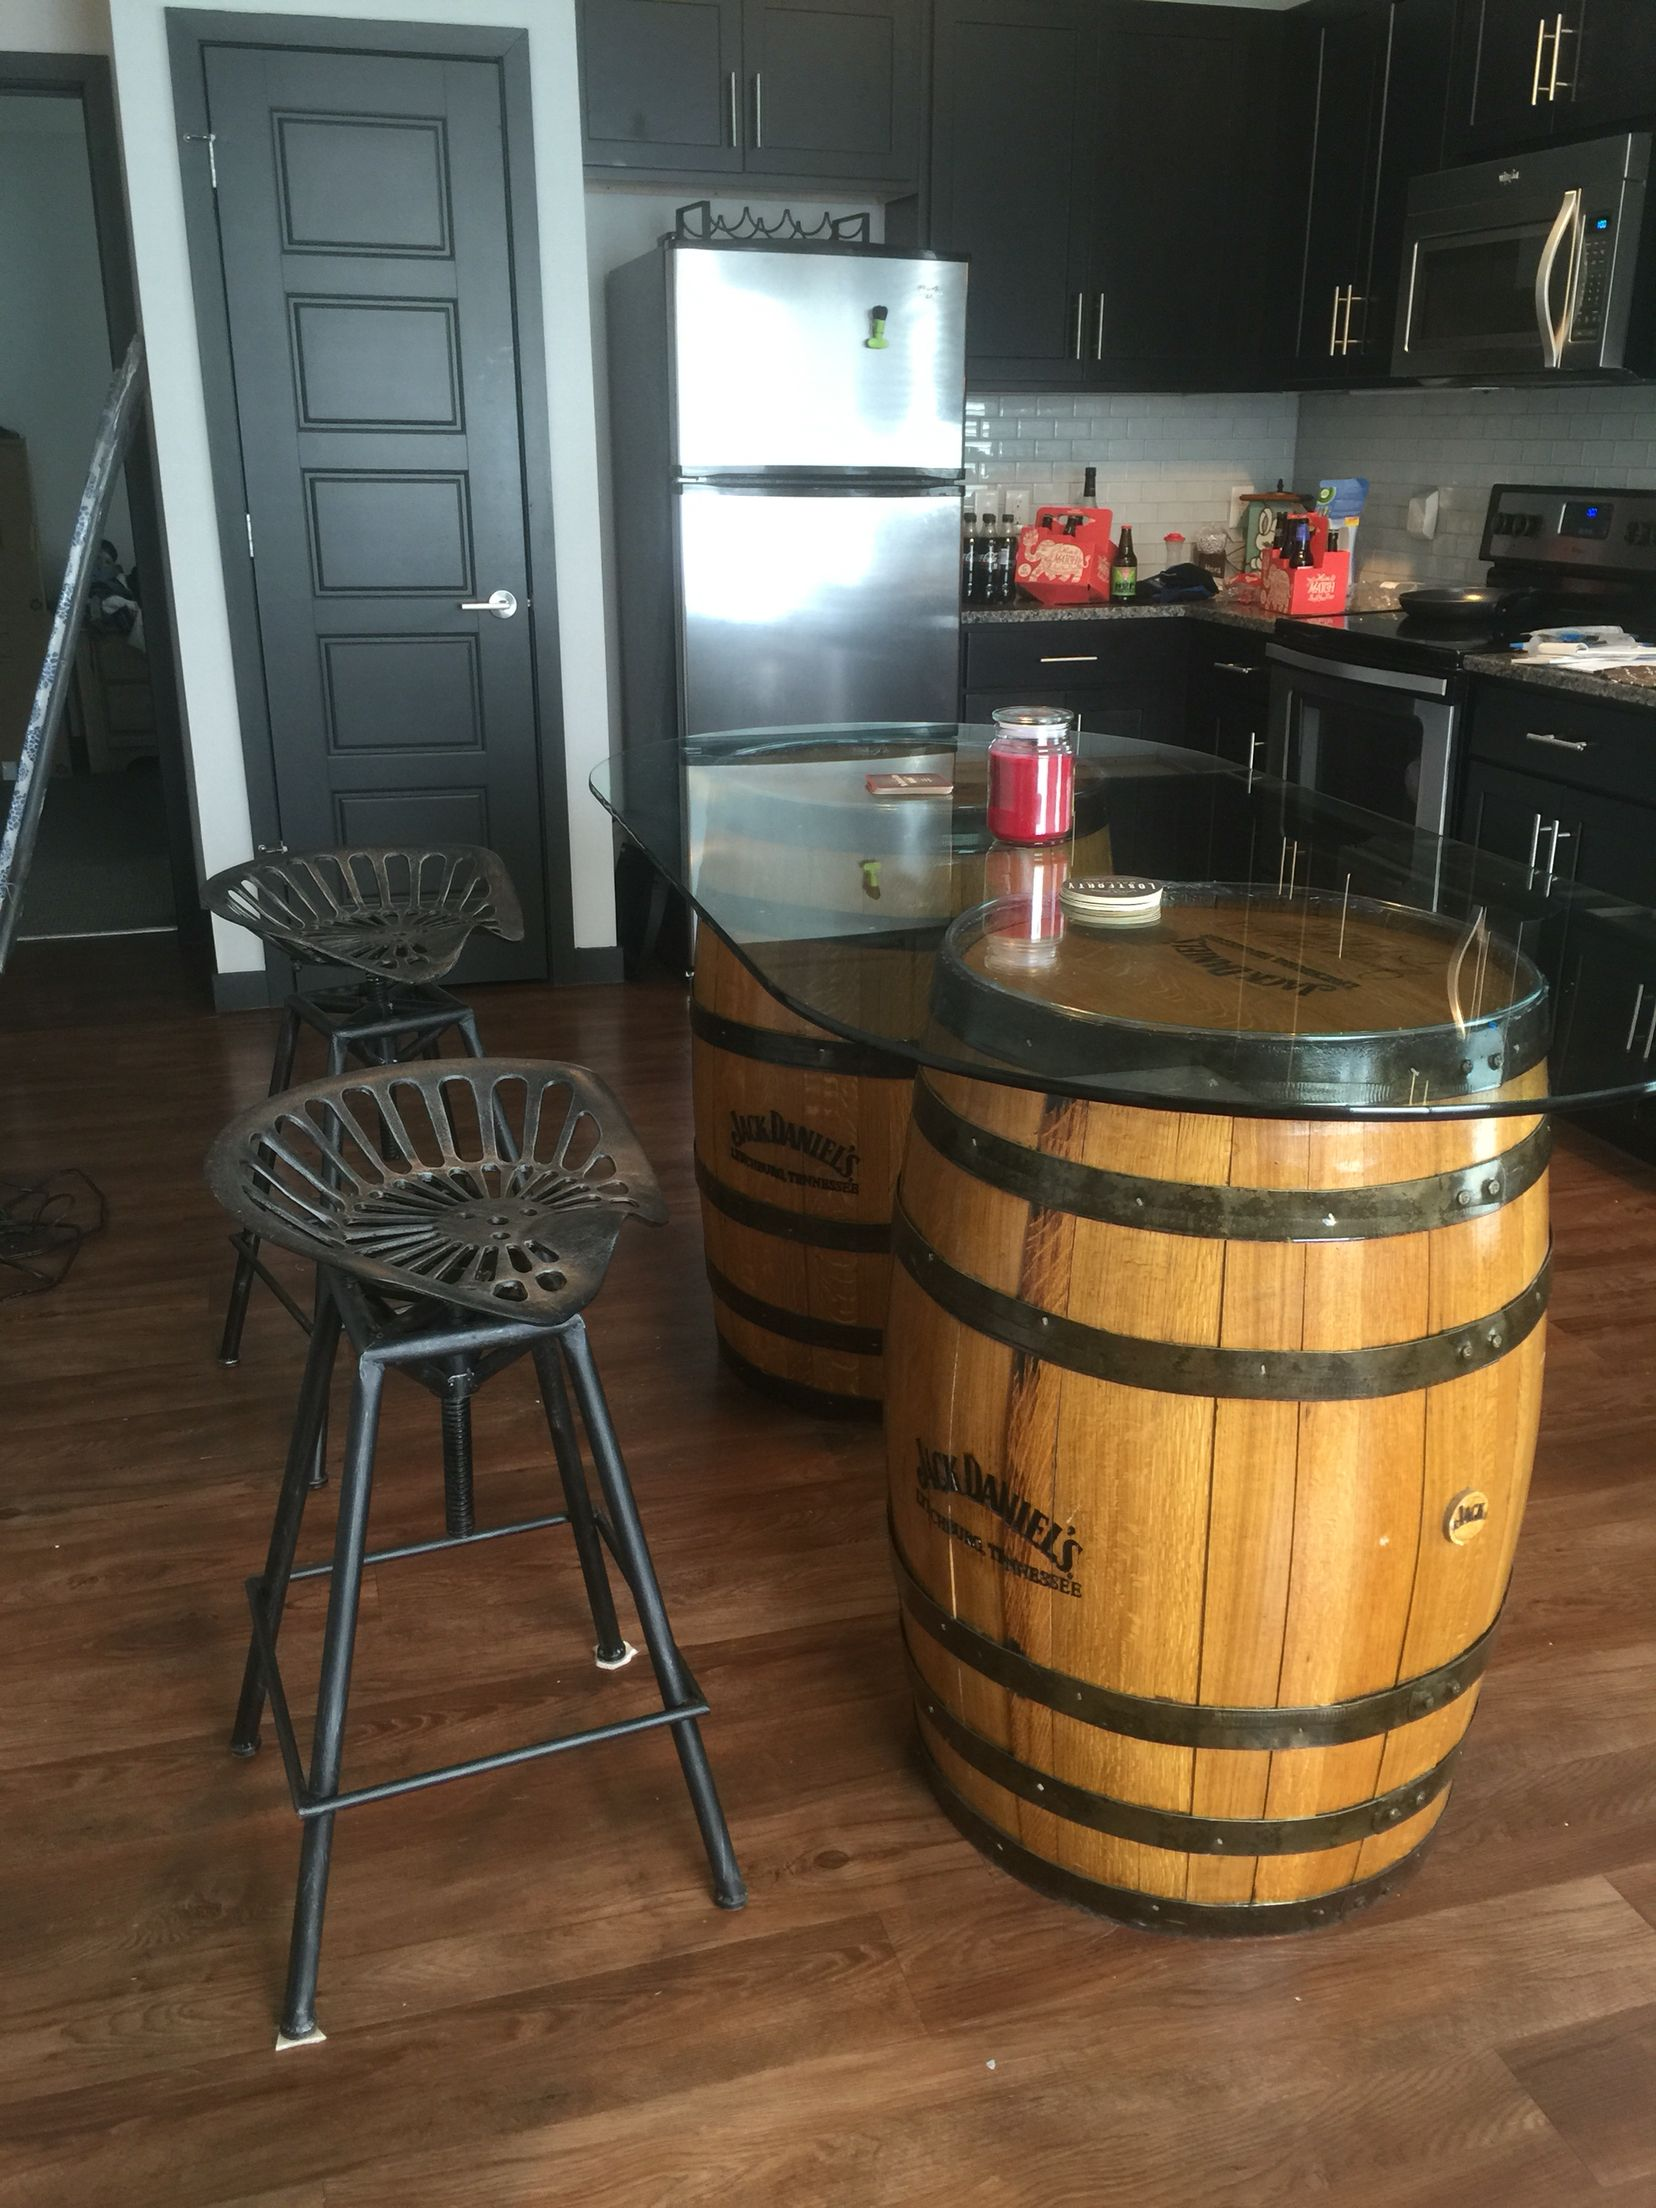 Re purposed authentic Jack Daniels Whiskey barrel table  : bcb47b873a59567d768793dfd4a43d0c from www.pinterest.com size 1656 x 2208 jpeg 3492kB